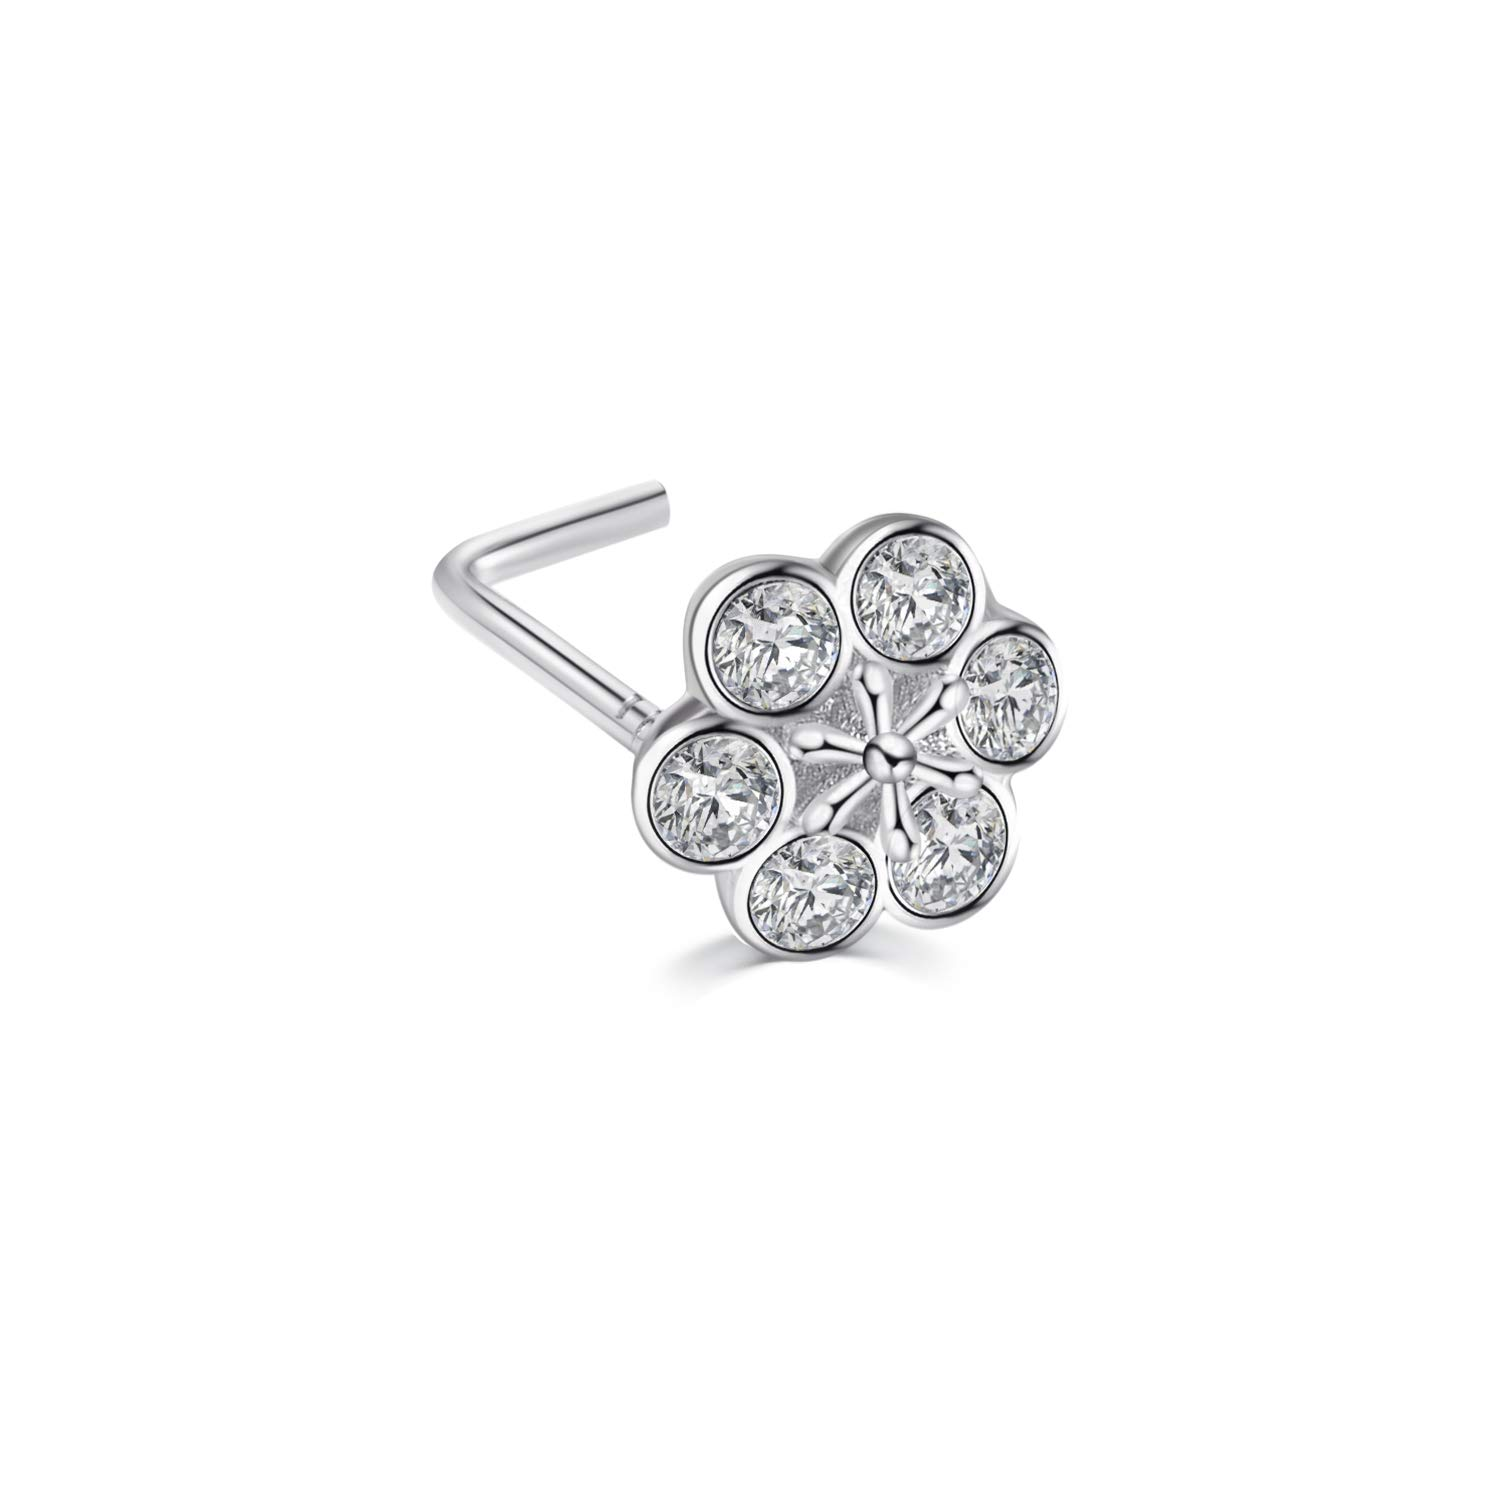 AOBOCO Sterling Silver 20G Flower Nose Ring L Shape Face Nose Stud with Swarovski Crystal